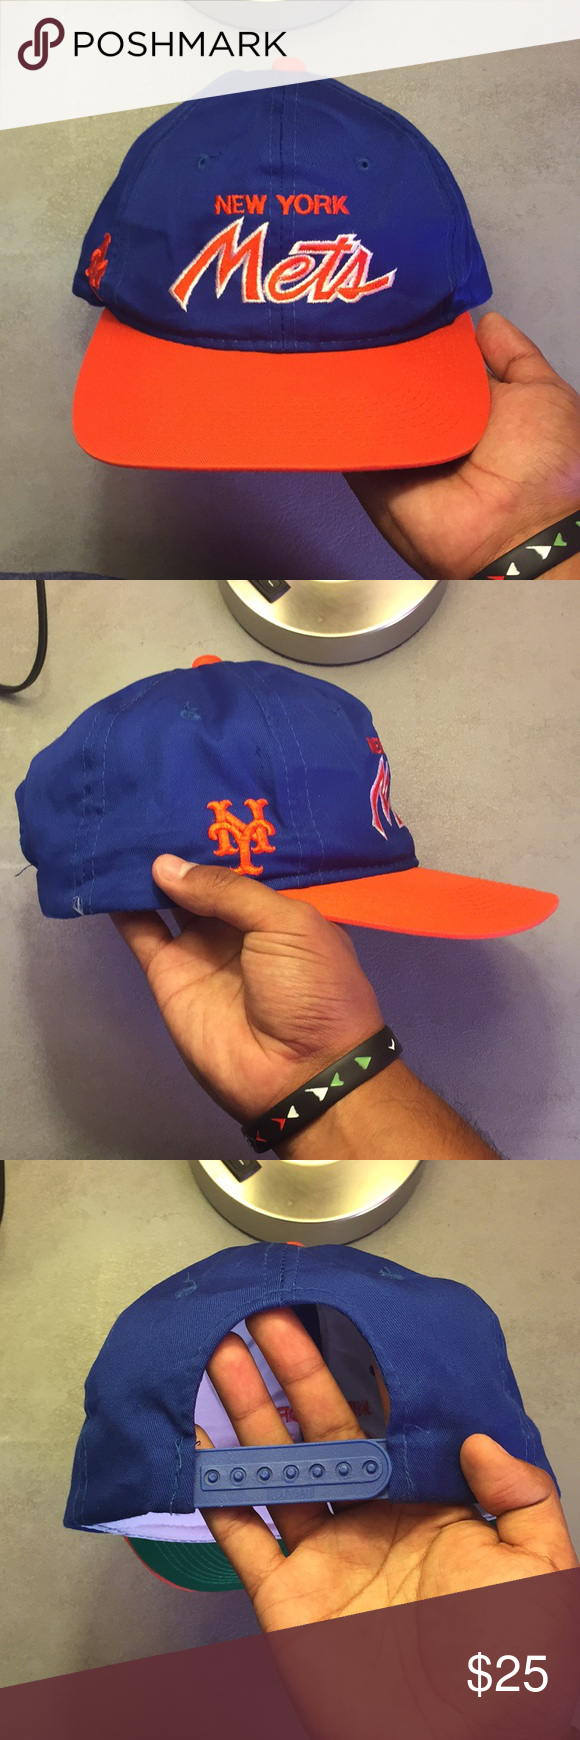 dfd8baf7 Vintage Sports Specialties New York Mets Hat Good condition. No flaws. WILL  CONSIDER OFFERS. **Check out the rest of my closet** MLB Accessories Hats